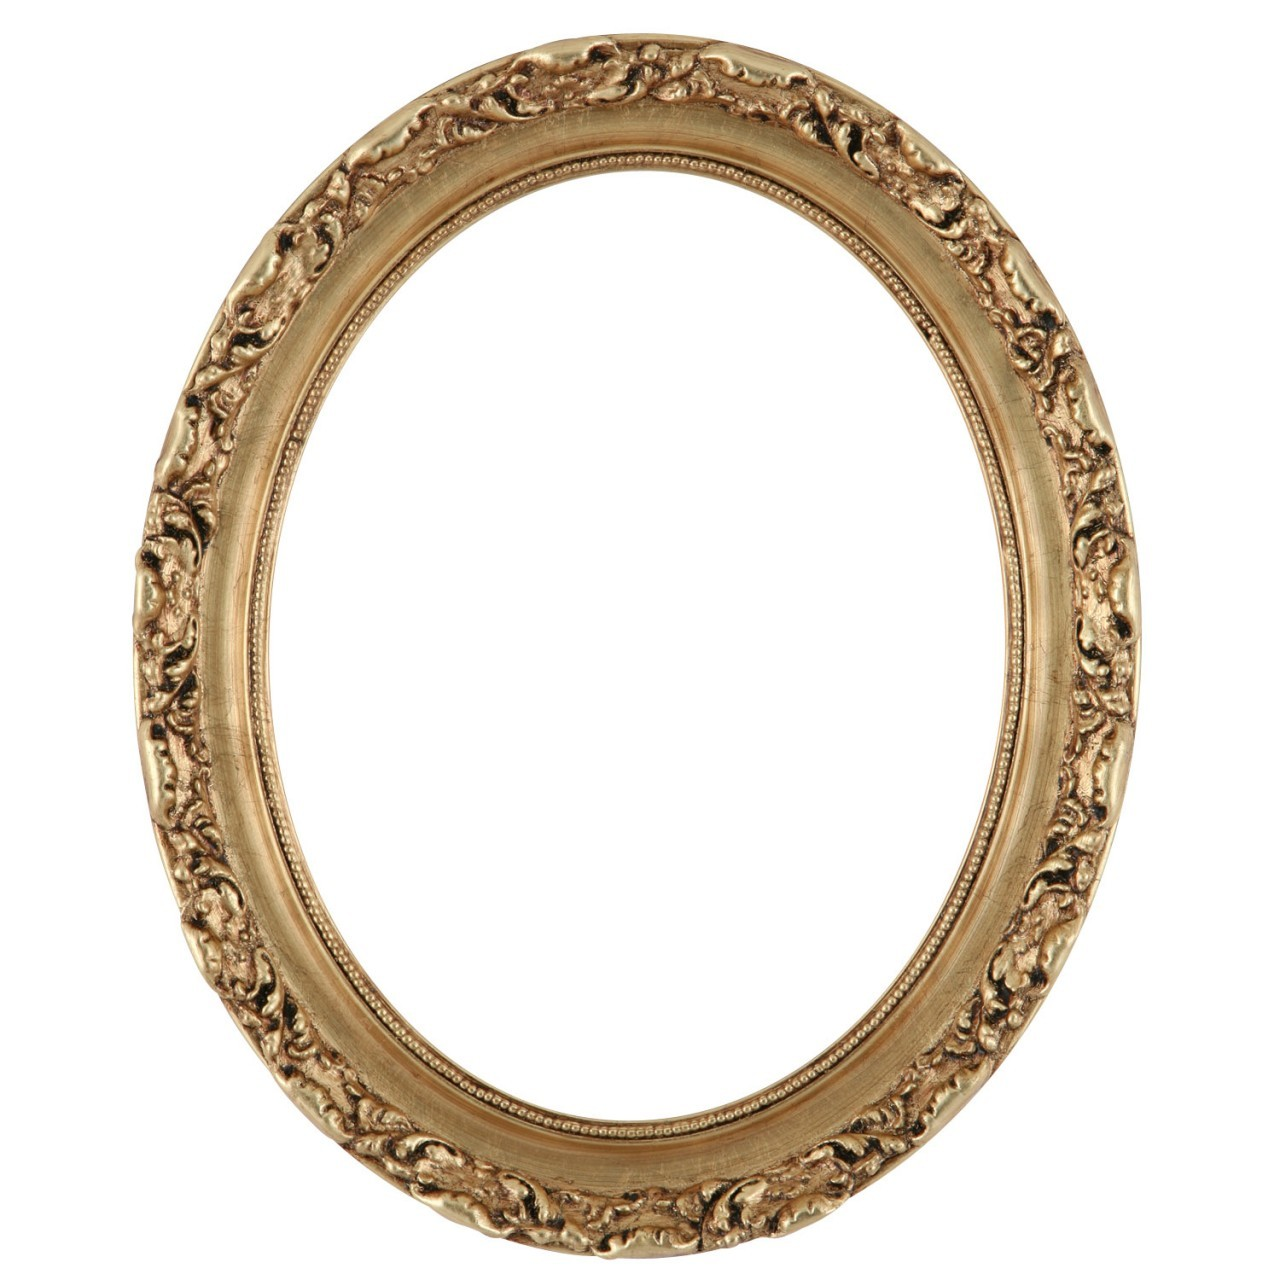 Gold Oval Frame Clipart | Clipart Panda - Free Clipart Images